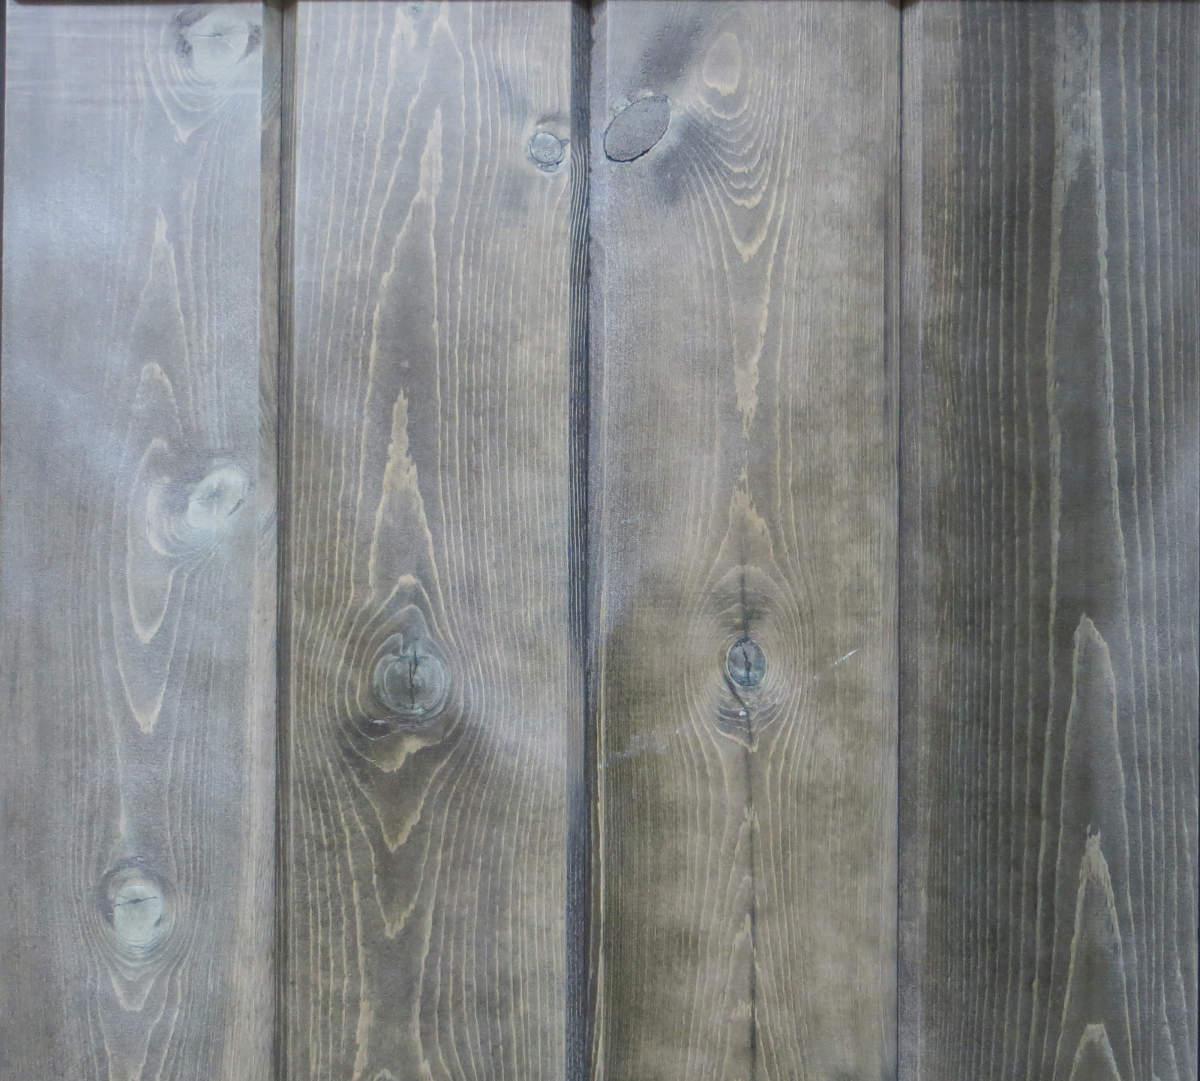 Wicked Wood Pine Paneling - BLUE SLATE - Stain plus 2 Clear Coats  (BL01-42)